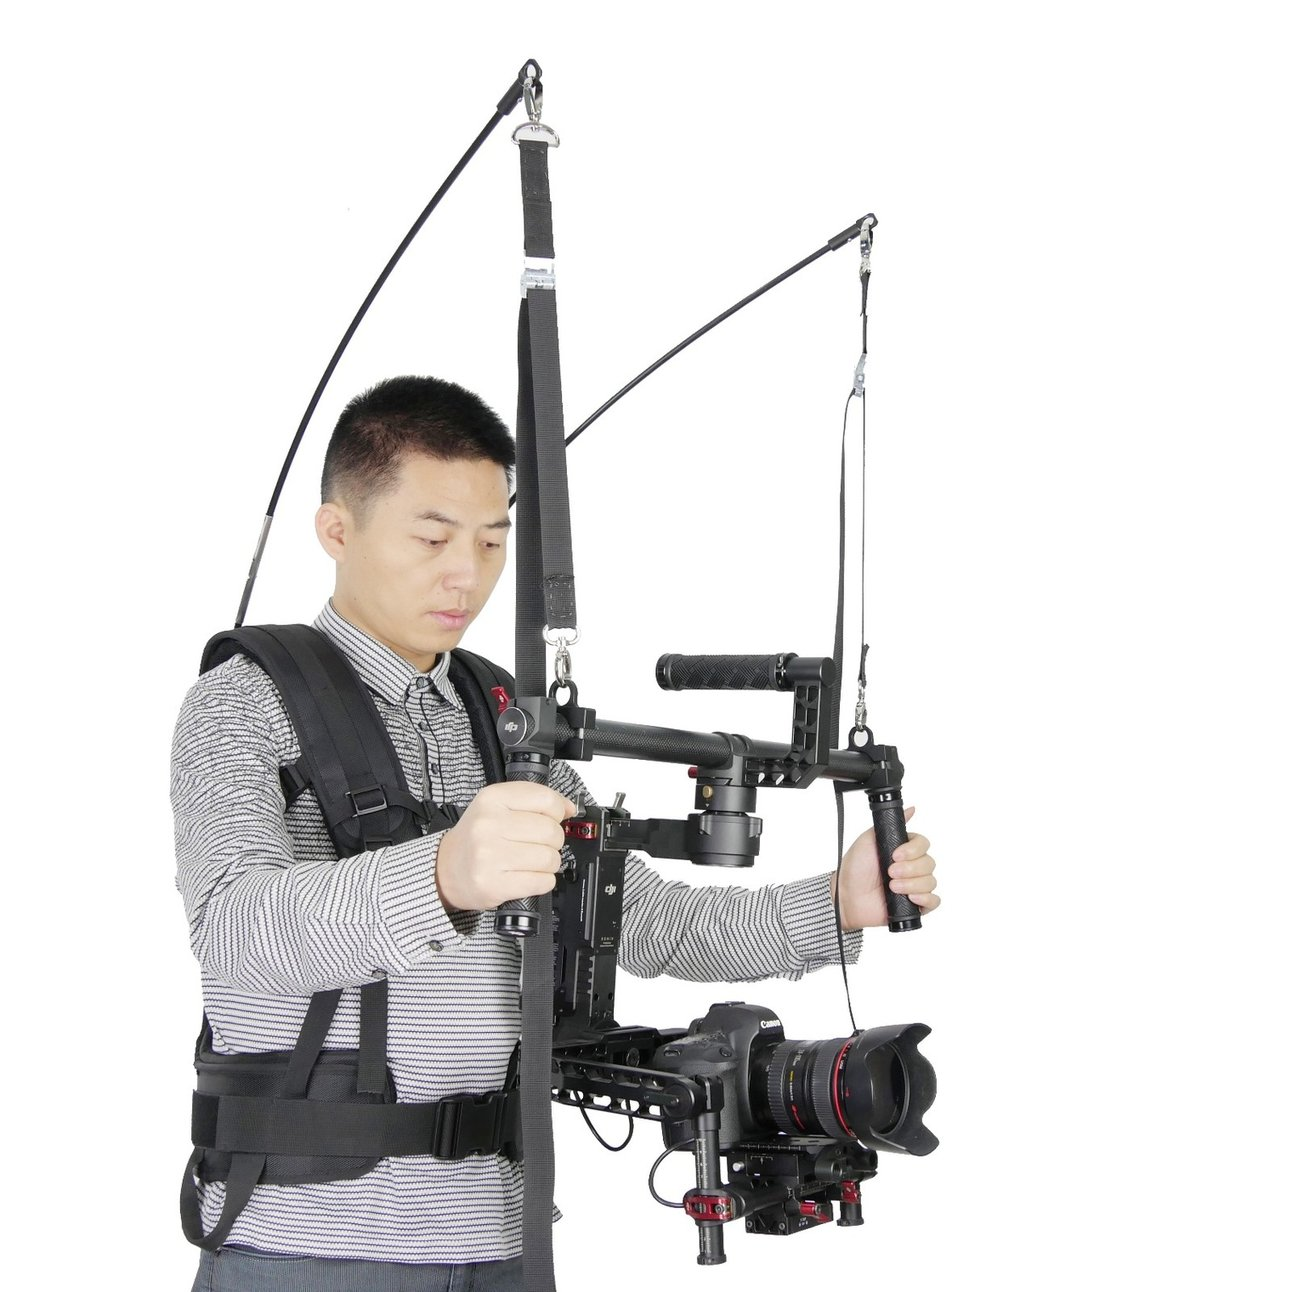 Laing V9 Waterproof Stabilizer Vest 4-11kg Loading Capacity Climbing Carabiner F Ronin DSLR  Handheld Gimbal Stabilizer System laing h5 mini carbon fiber handheld stabilizer with 6 17lb 2 8kg loading capacity for dslr cameras with bag and arm brace wrist